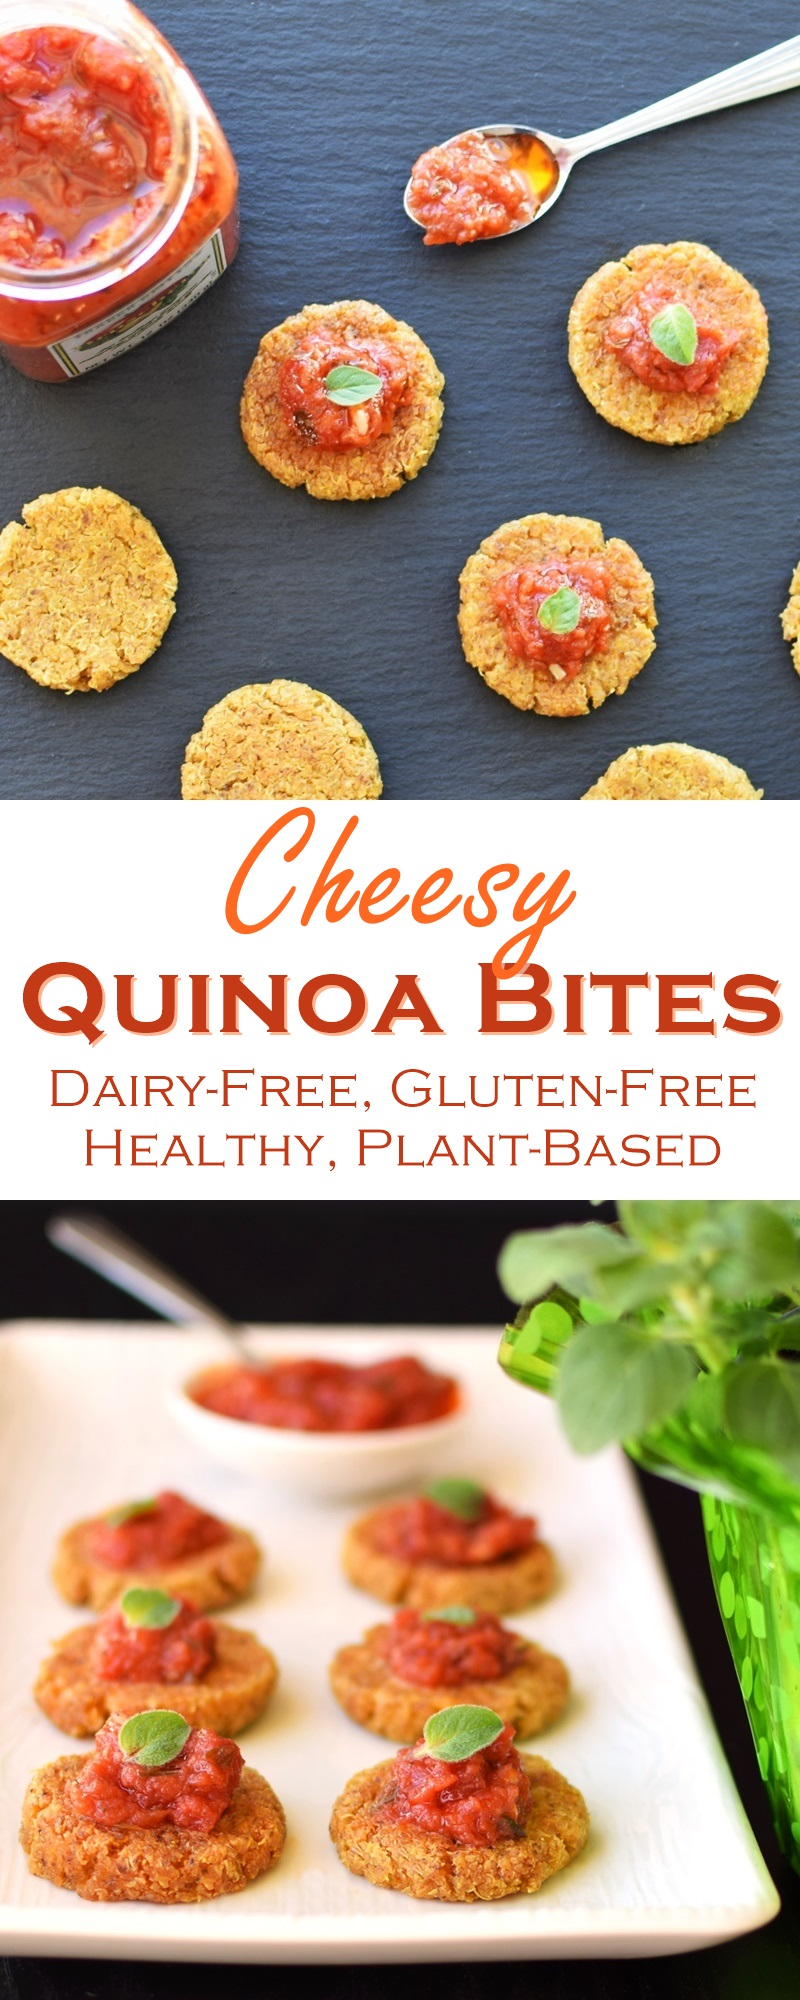 Cheesy Dairy-Free Quinoa Bites - plant-based, gluten-free, delicious, versatile, no fillers, and healthy!